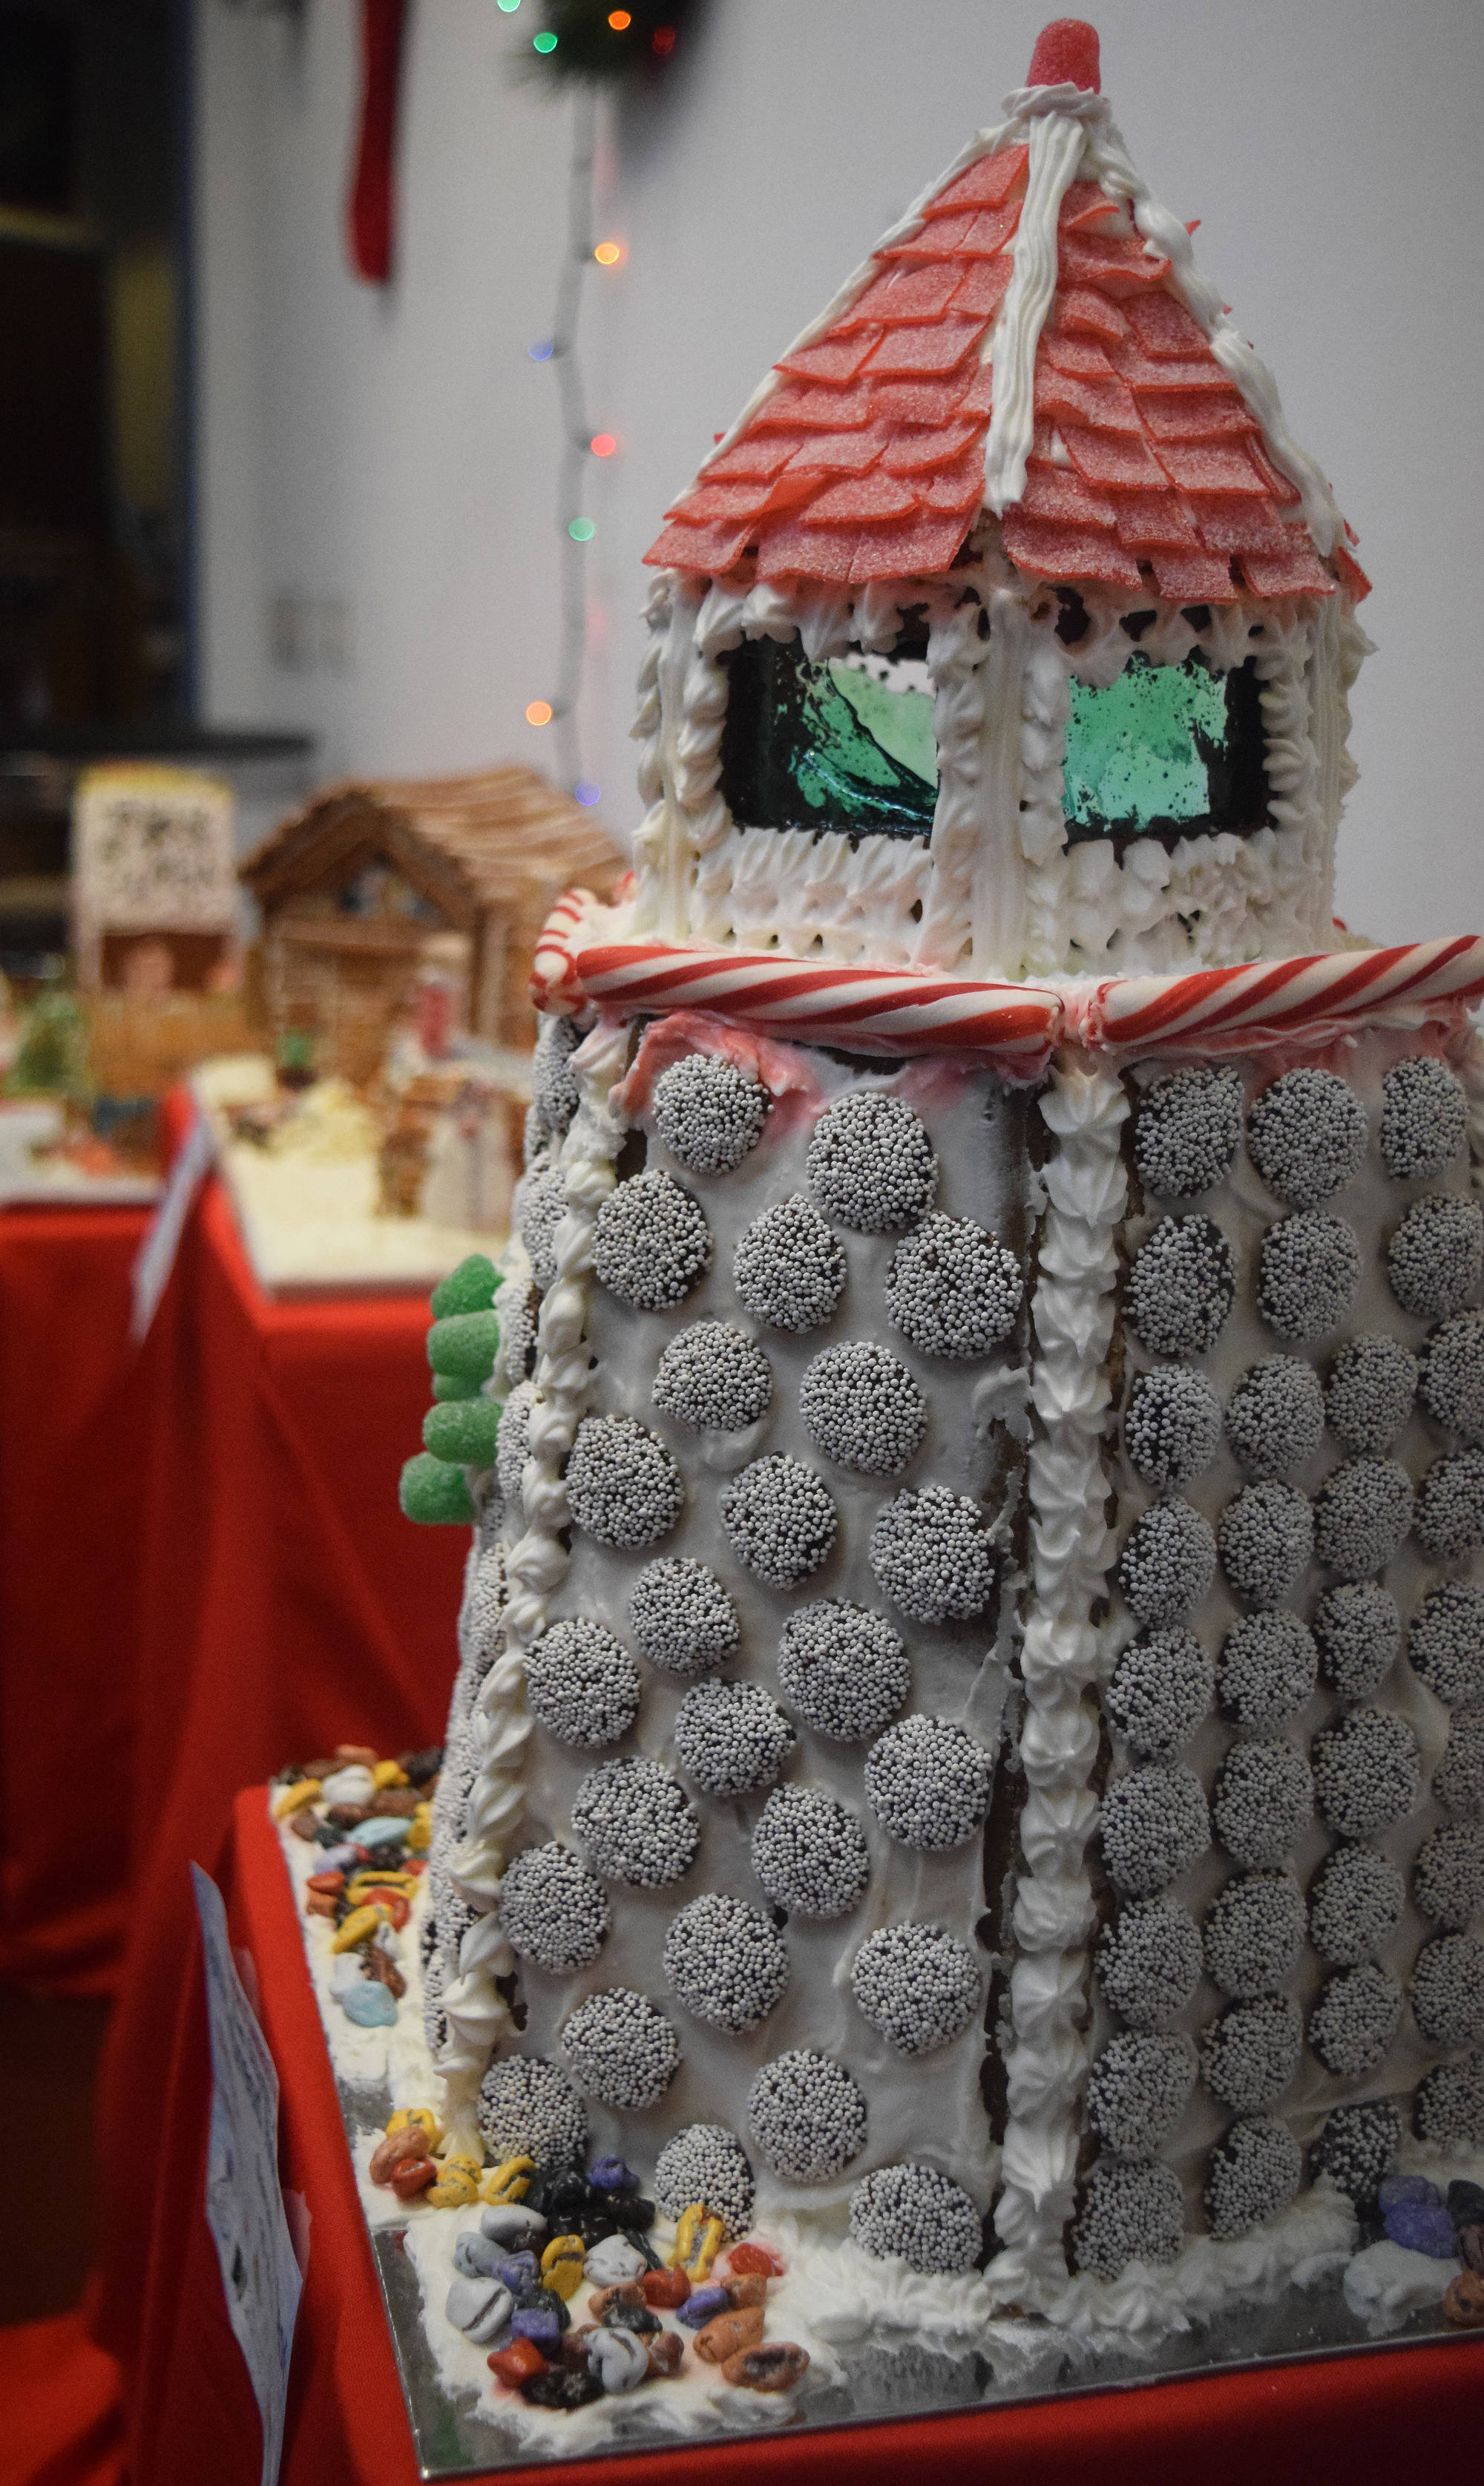 An entry by Sarah Roberts sits on display in the Kenai Chamber of Commerce and Visitor Center gingerbread house contest. The gingerbread houses will be on display until Dec. 21 in the visitor center. (Photo by Joey Klecka/Peninsula Clarion)